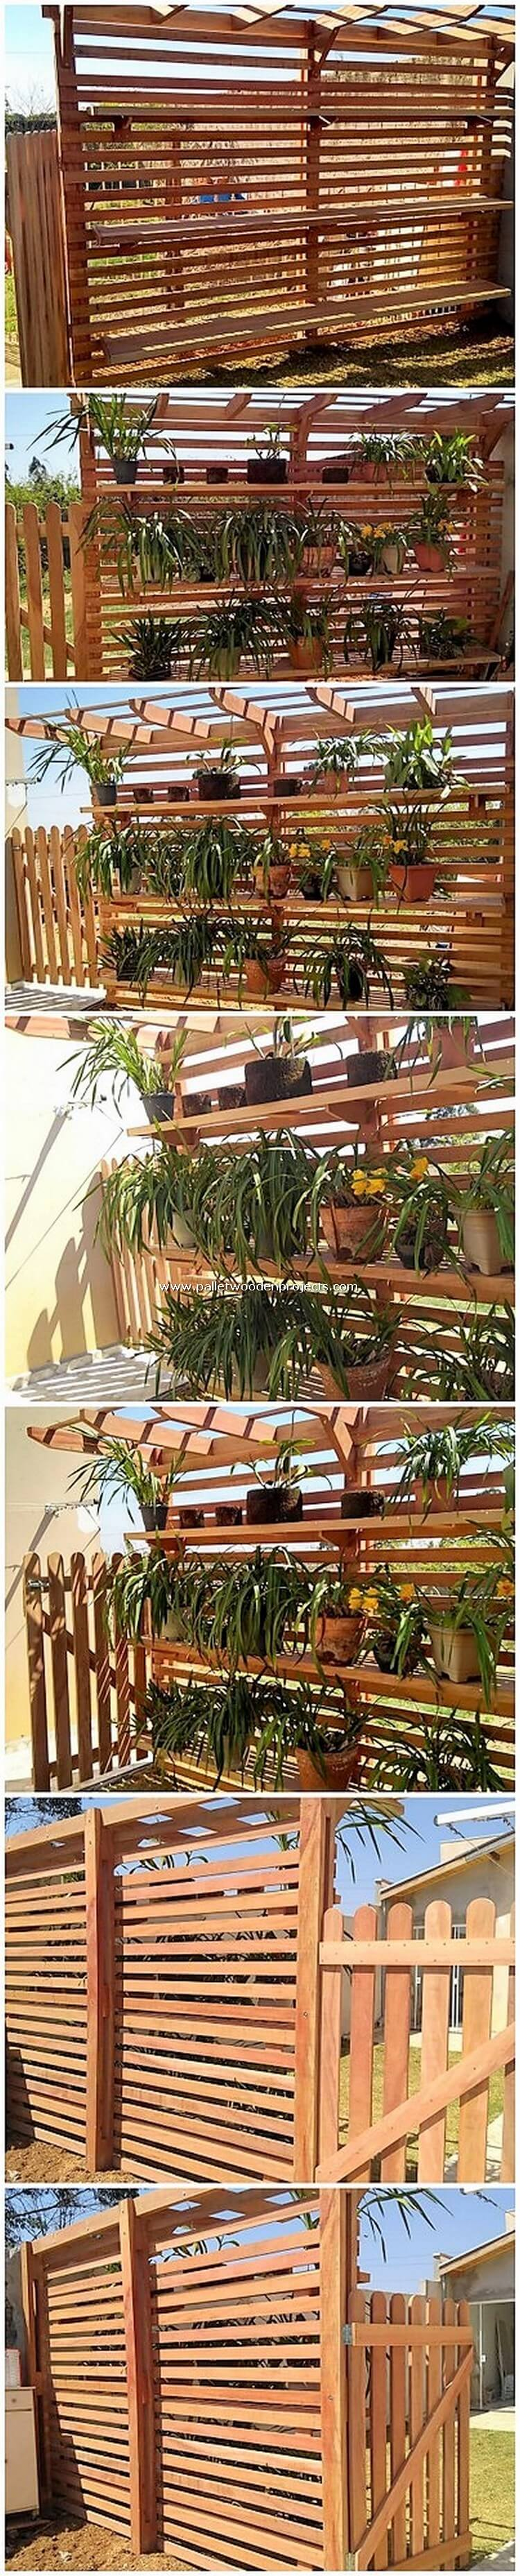 Pallet Garden Fence with Planter Pots Stands